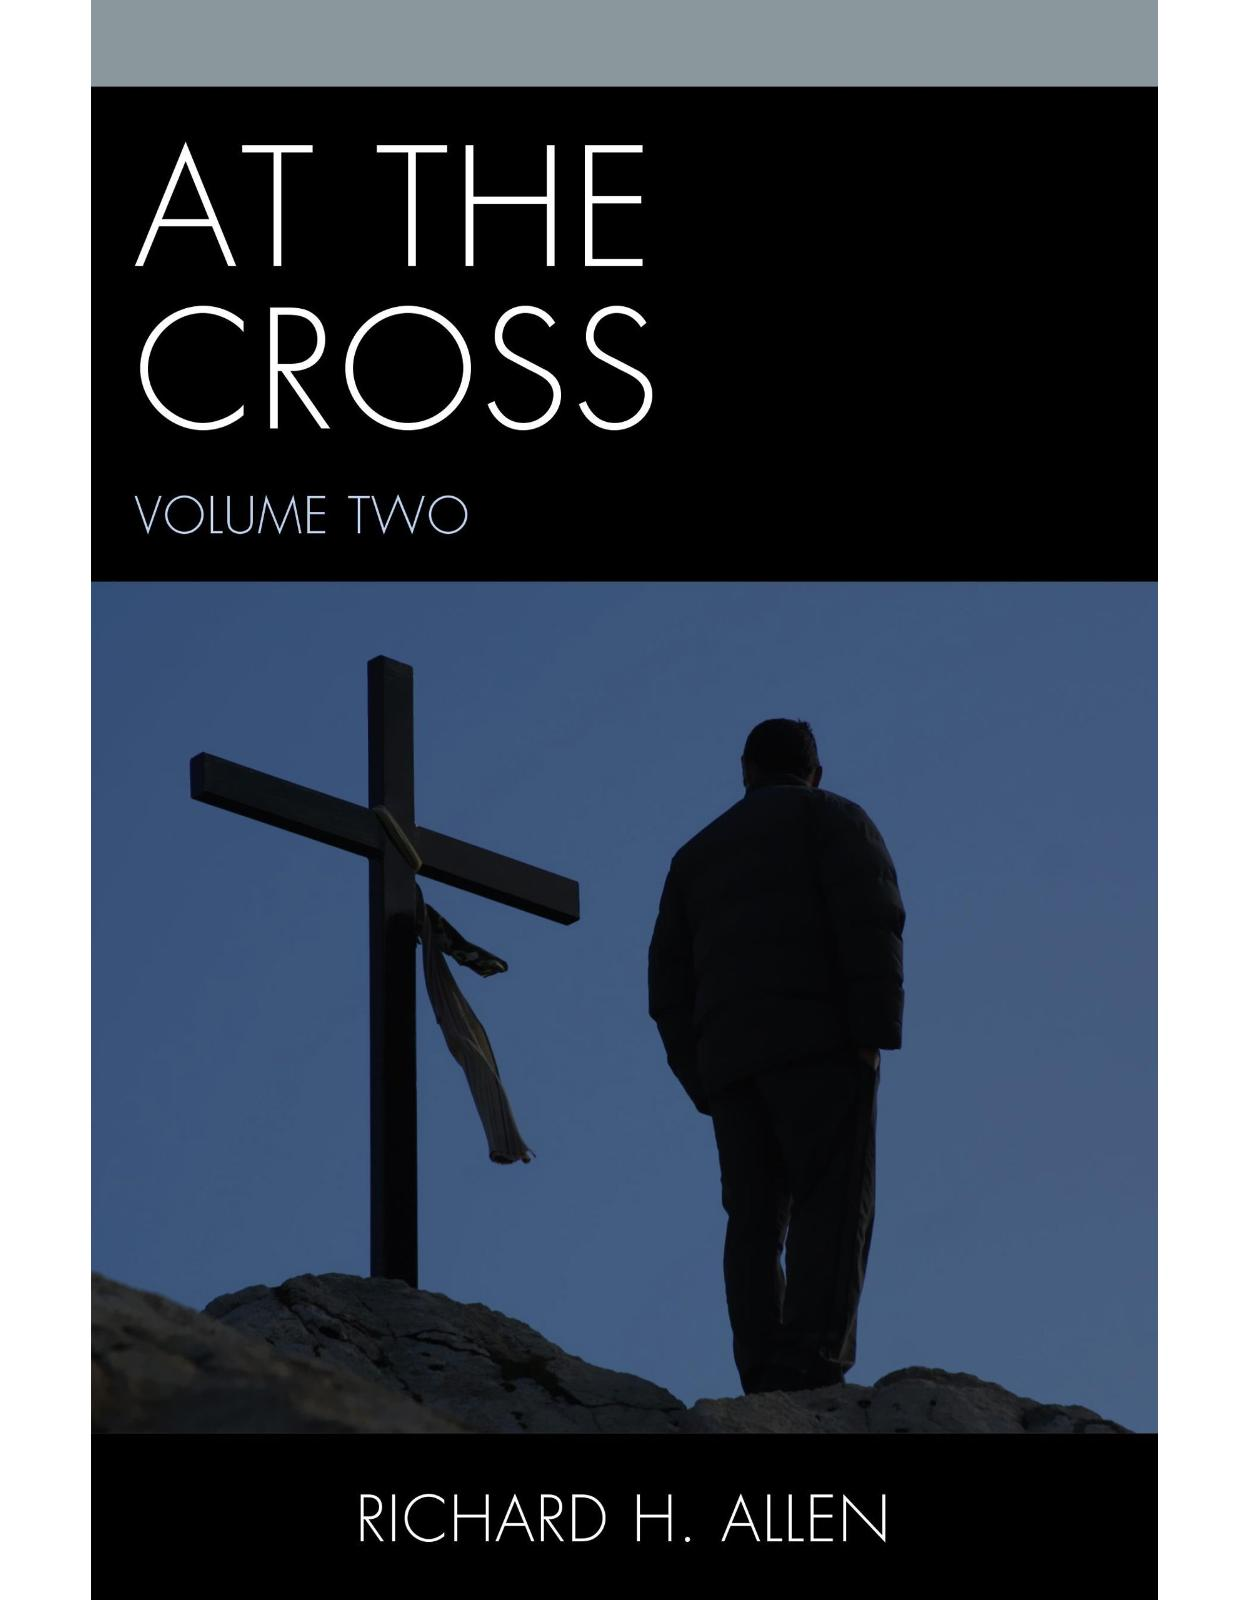 At the Cross, Volume 2